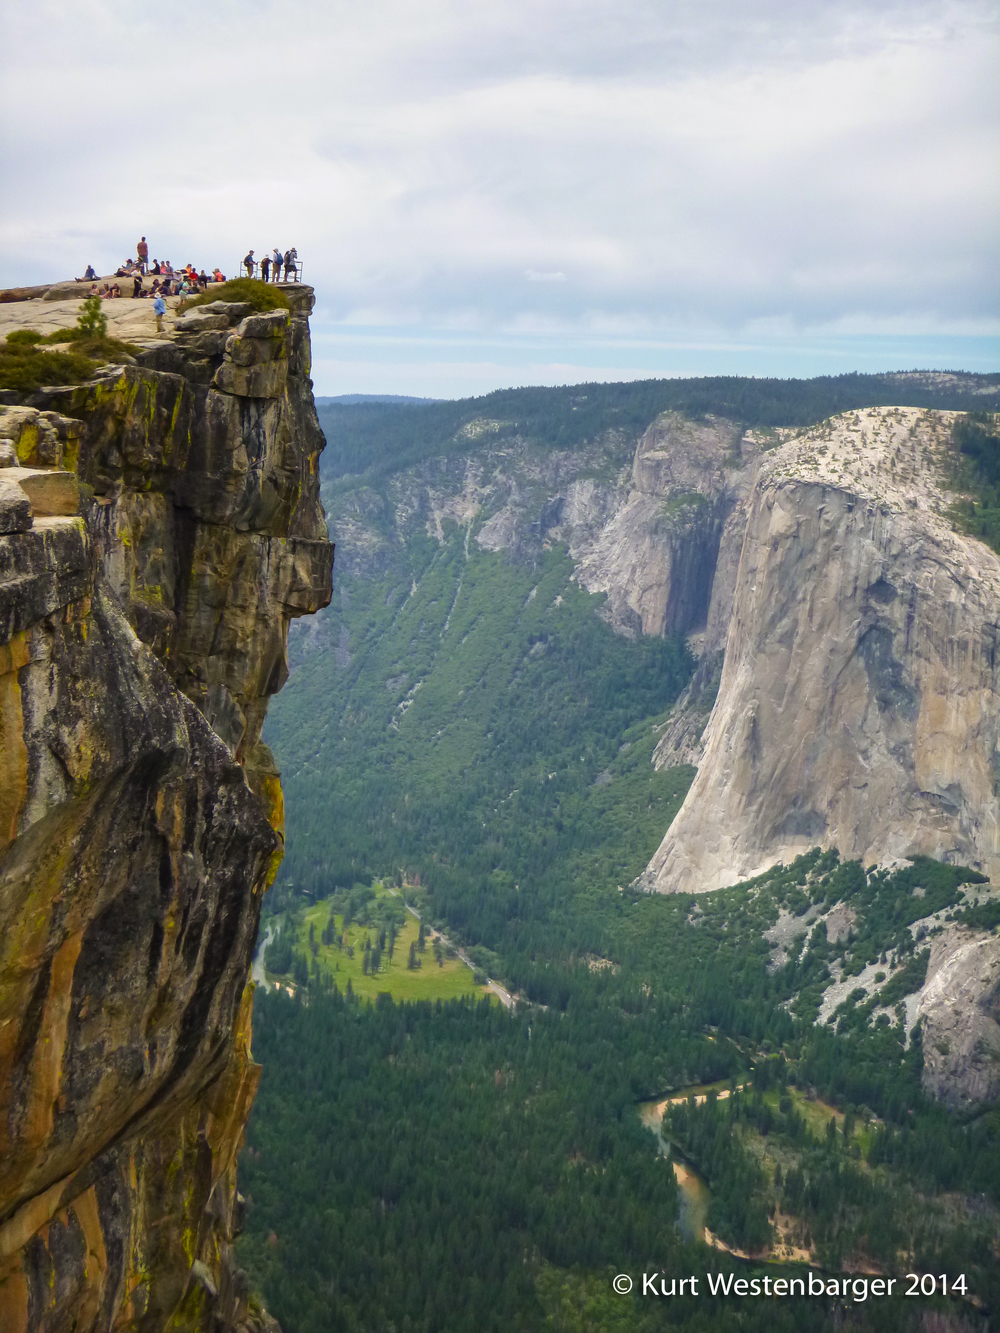 The view from Taft Point rivals that of the more famous, and crowded, Glacier Point.